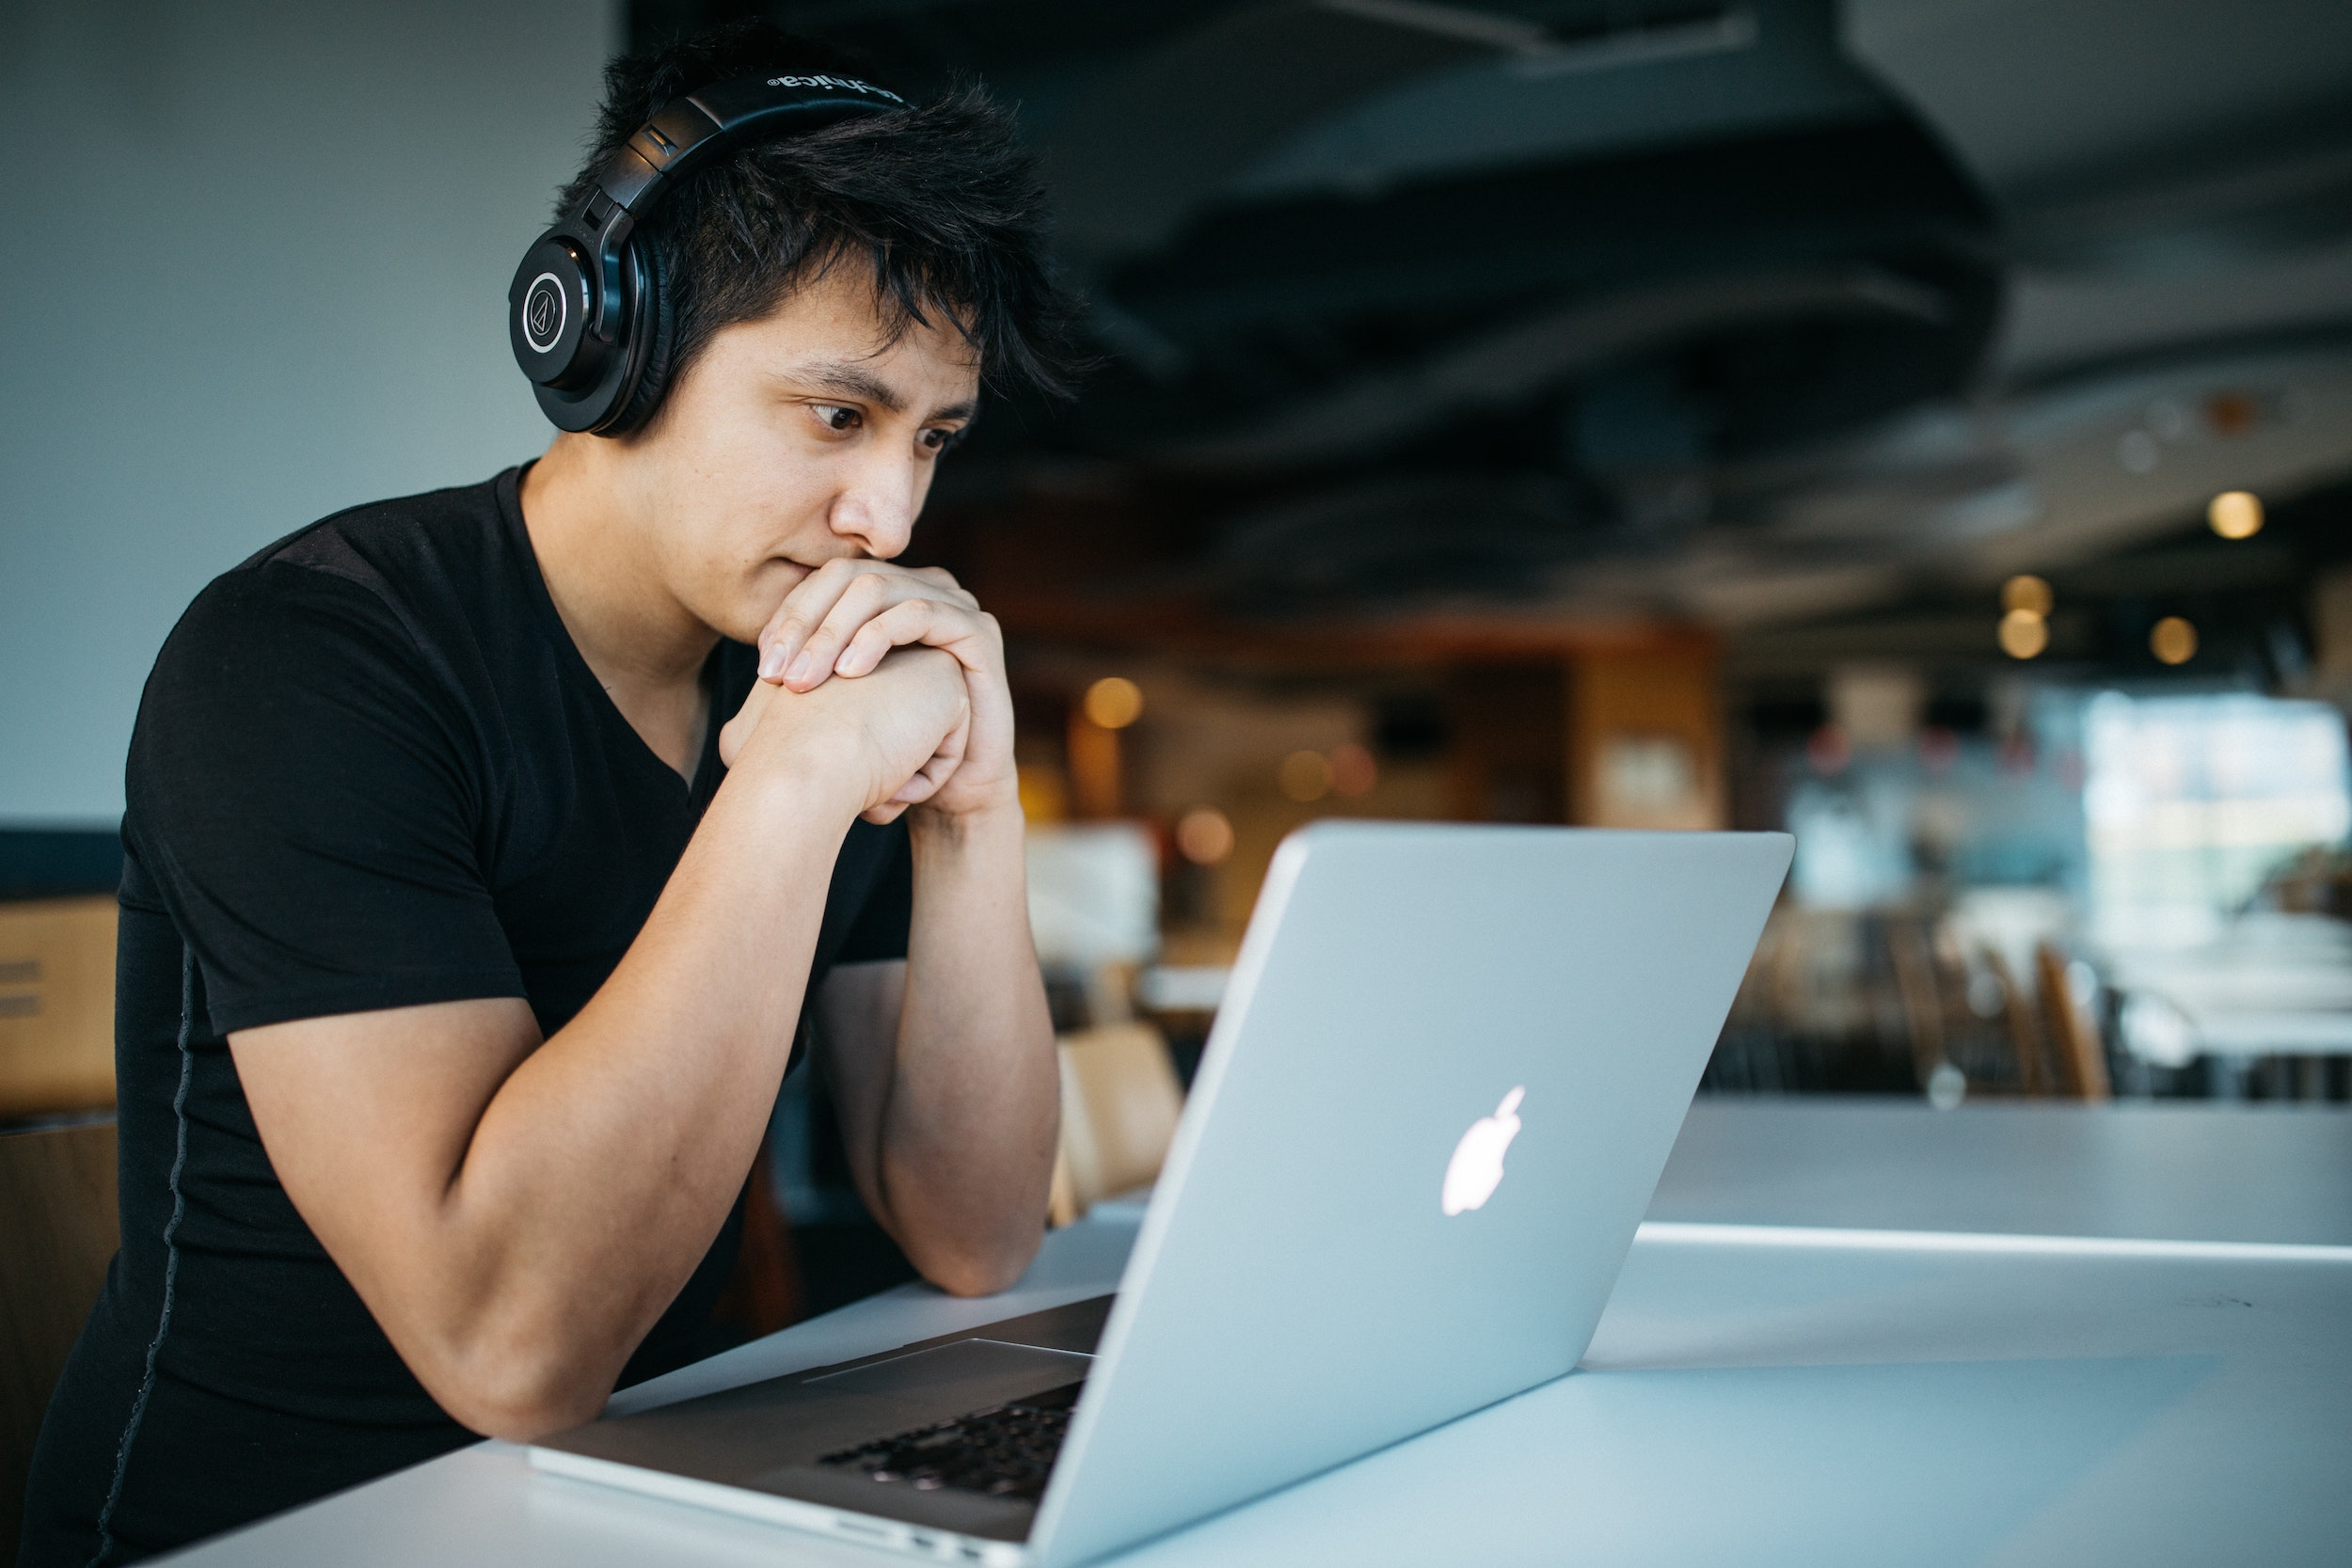 Adult looking at a laptop with headphones